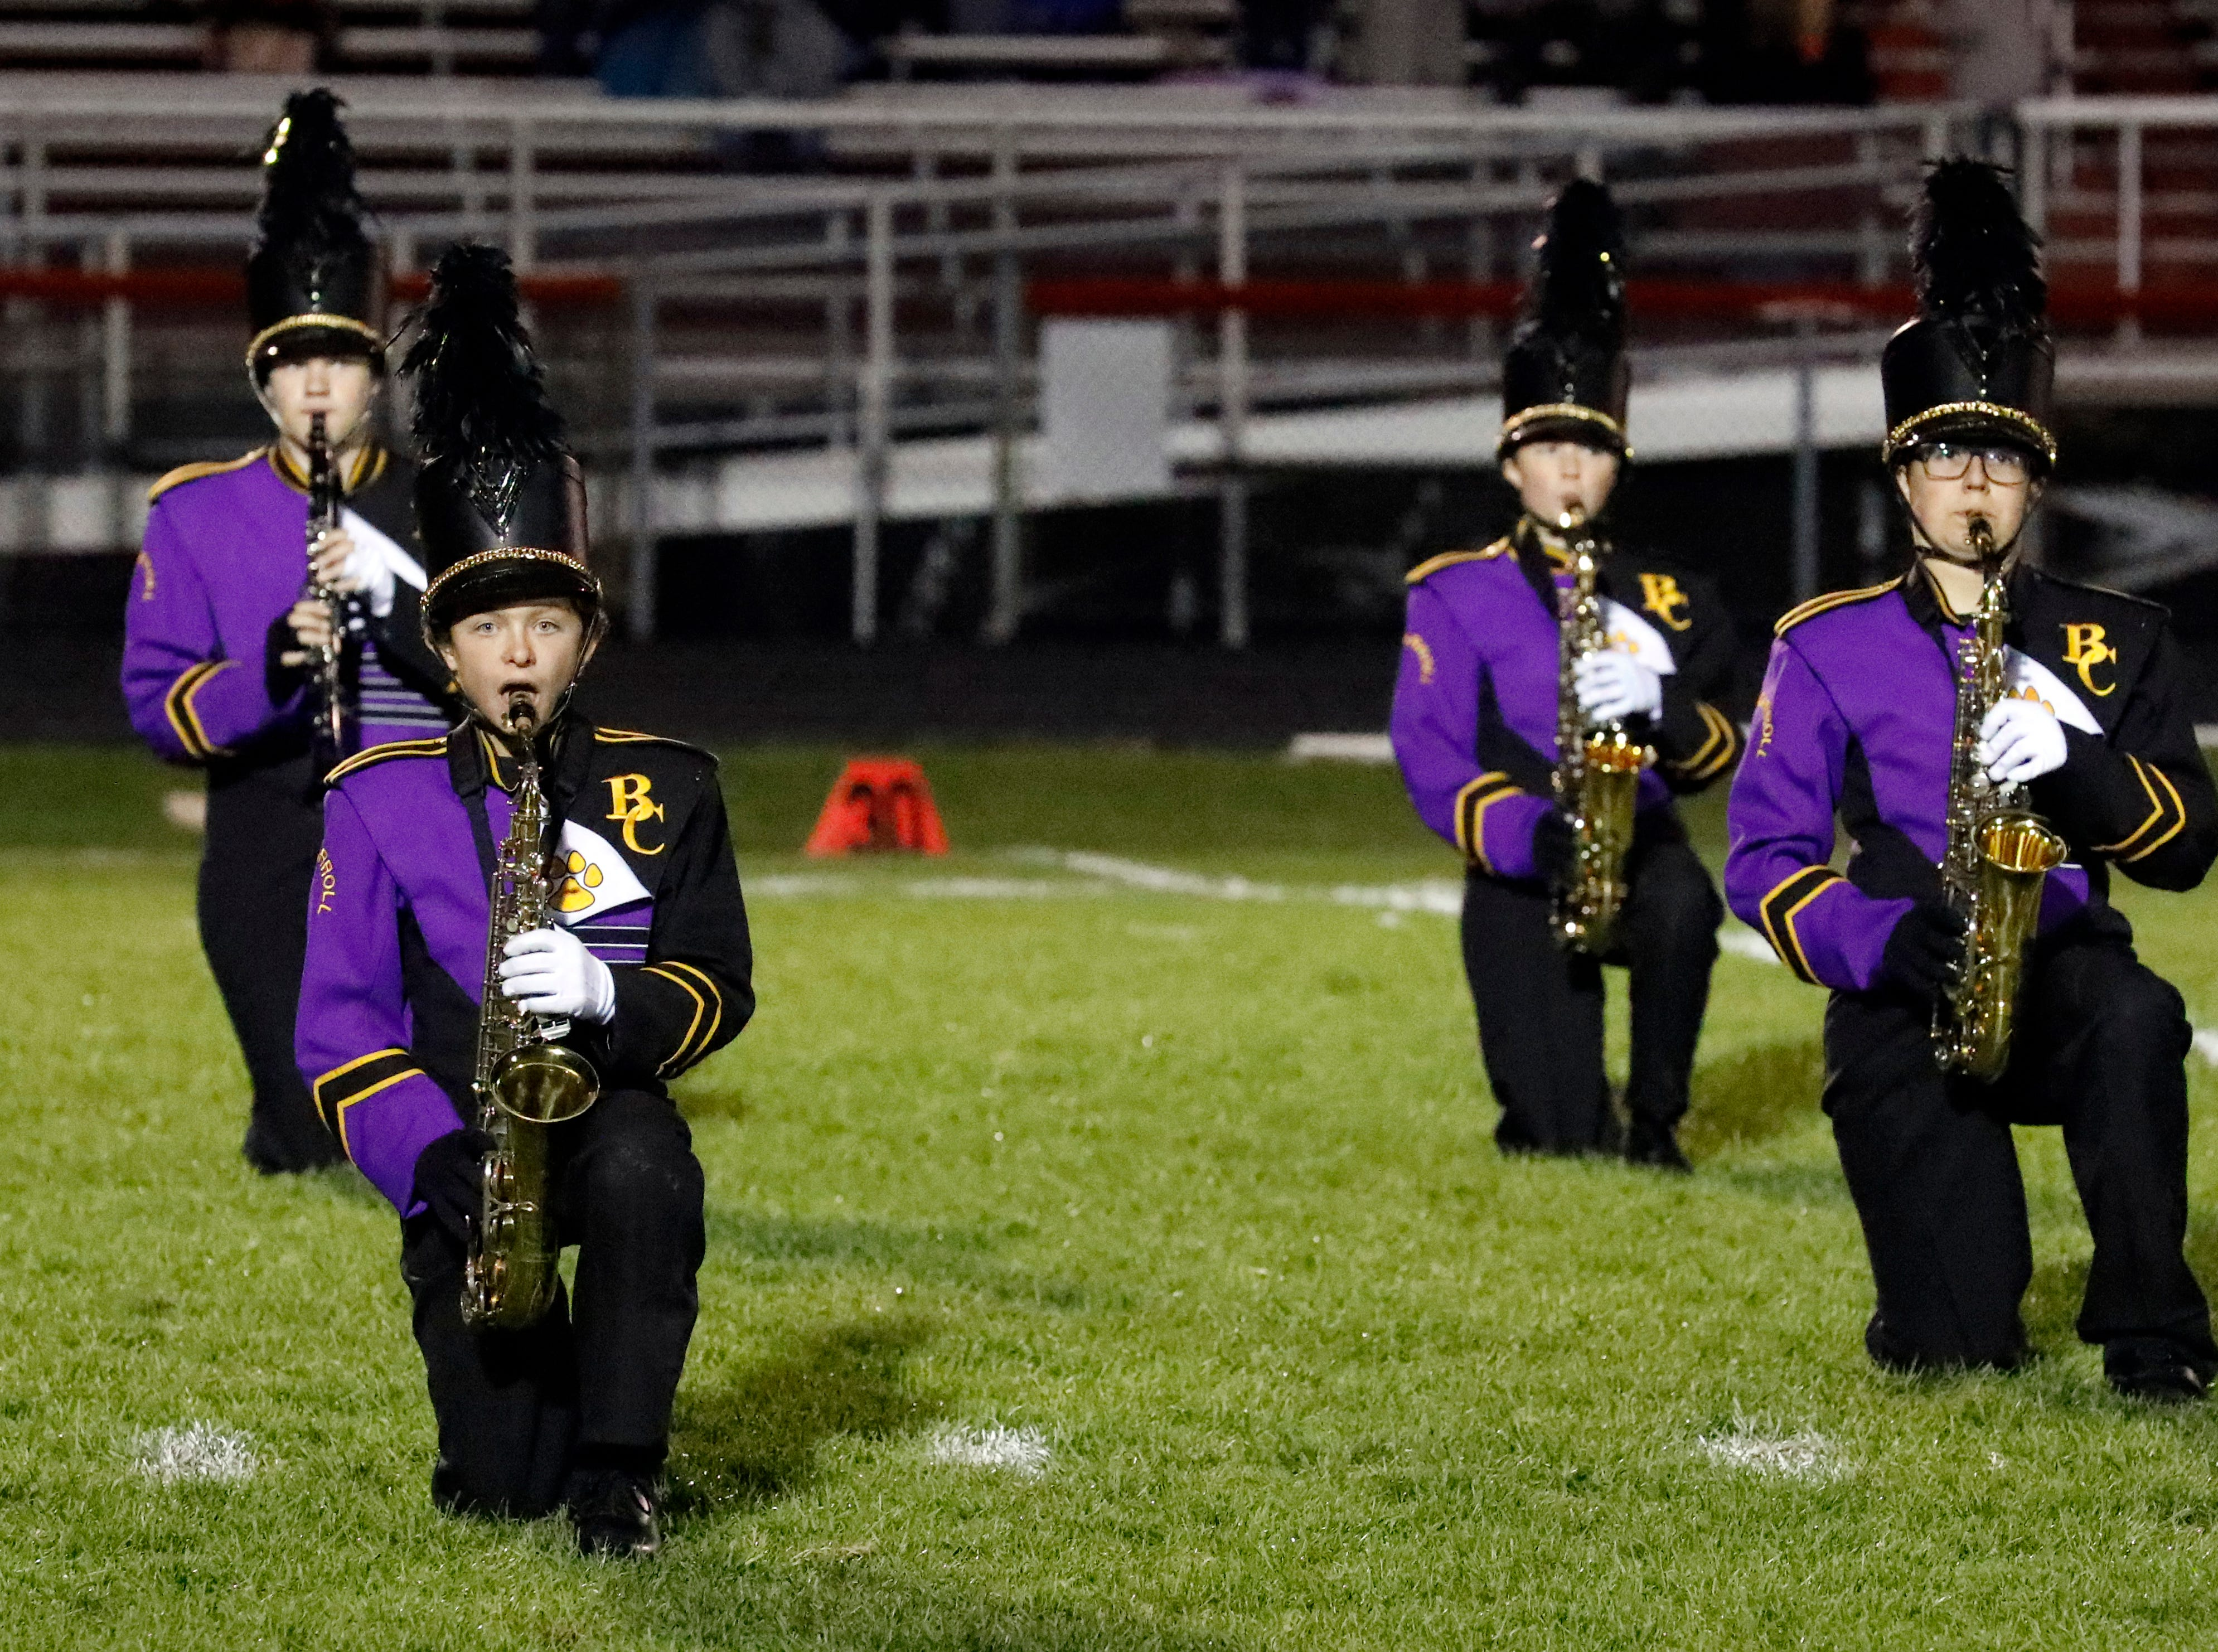 The Bloom-Carroll High School marching band perform during halftime at Friday night's football game, Oct. 19, 2018, at Fairfield Union High School in Rushville.